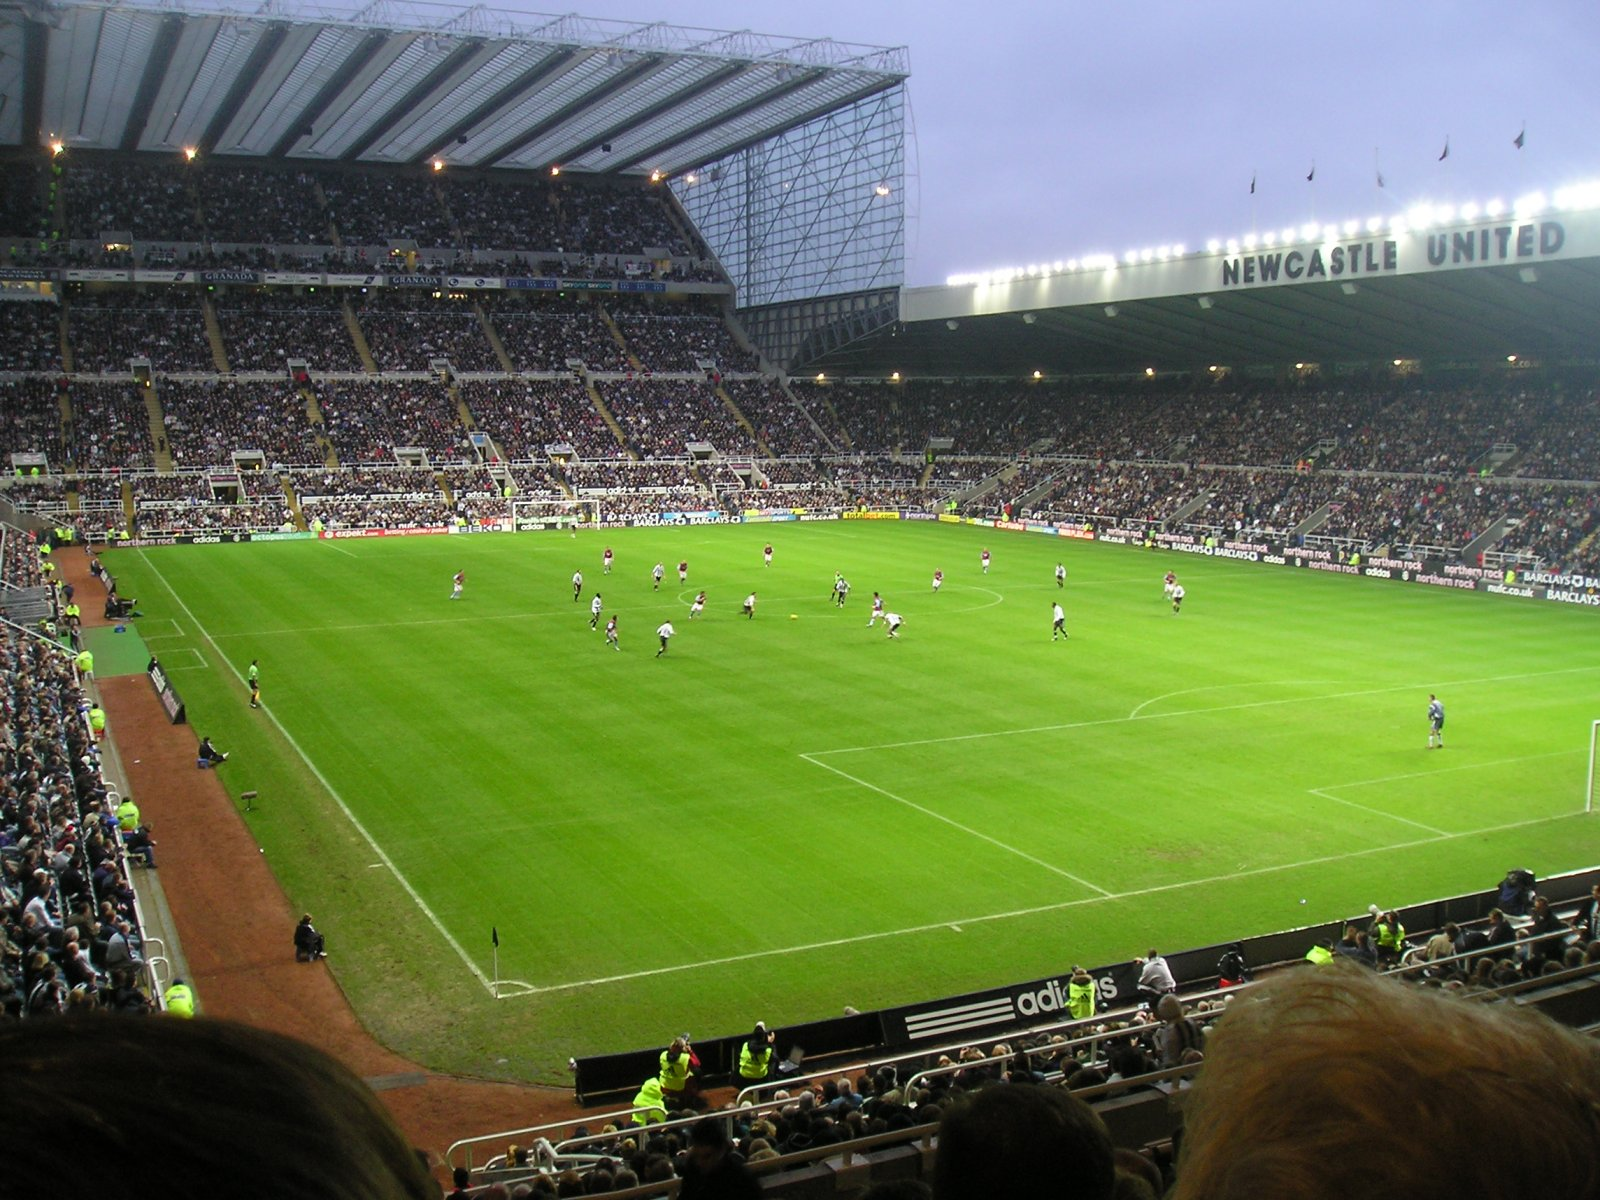 Newcastle United F C Football Club Of The Barclay S Premier League